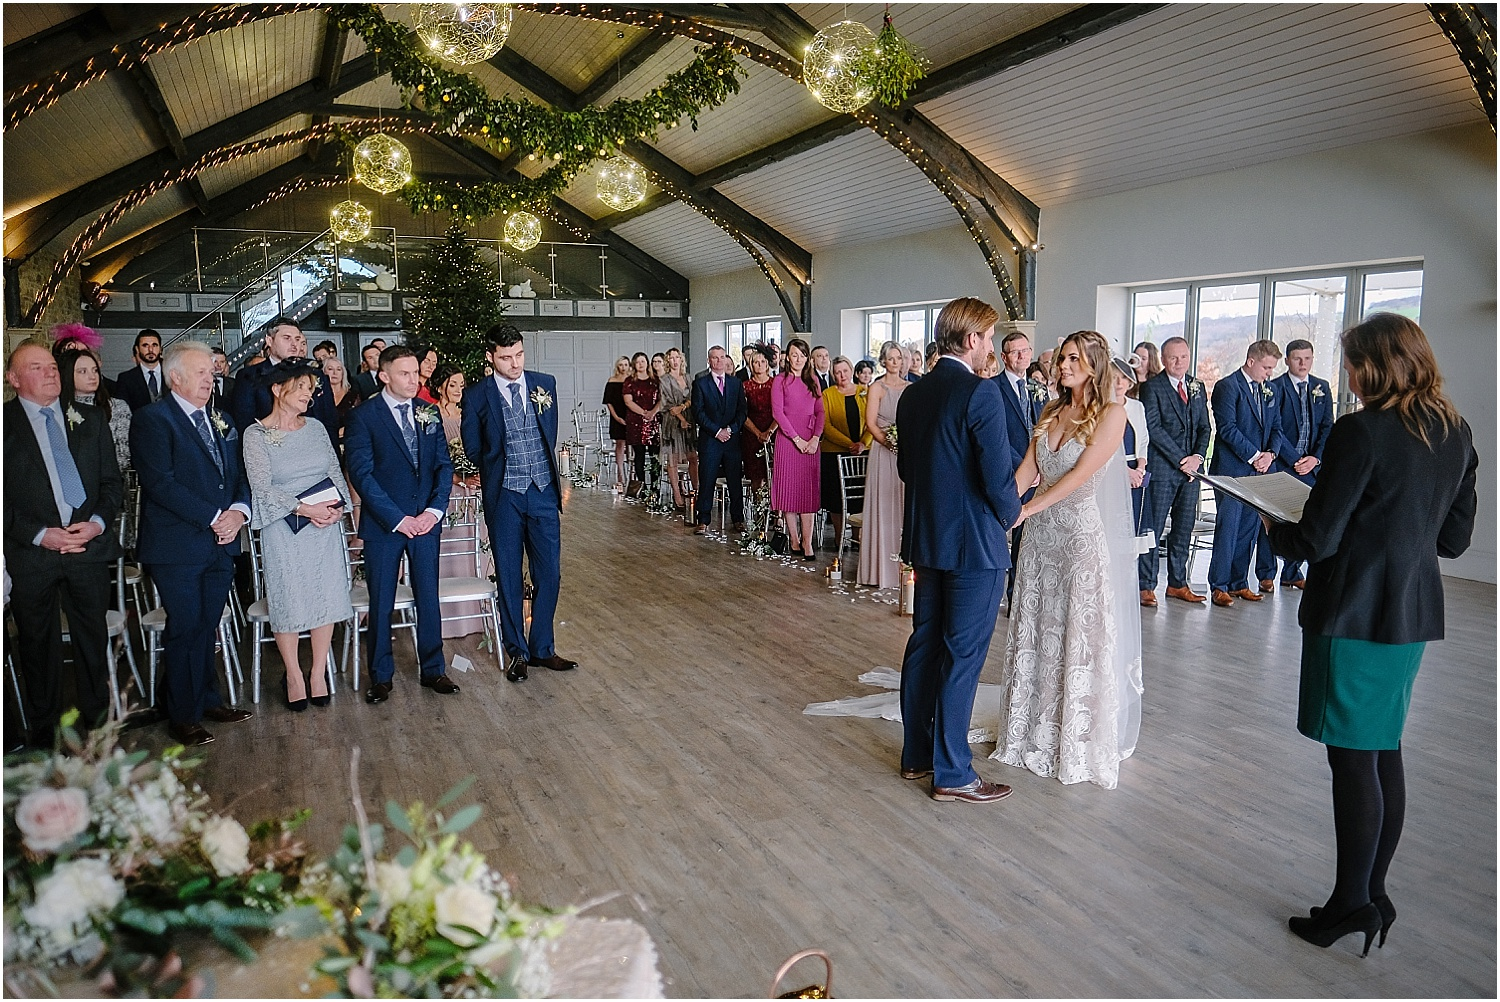 The Yorkshire Wedding barn photography by 2tone Photography 038.jpg